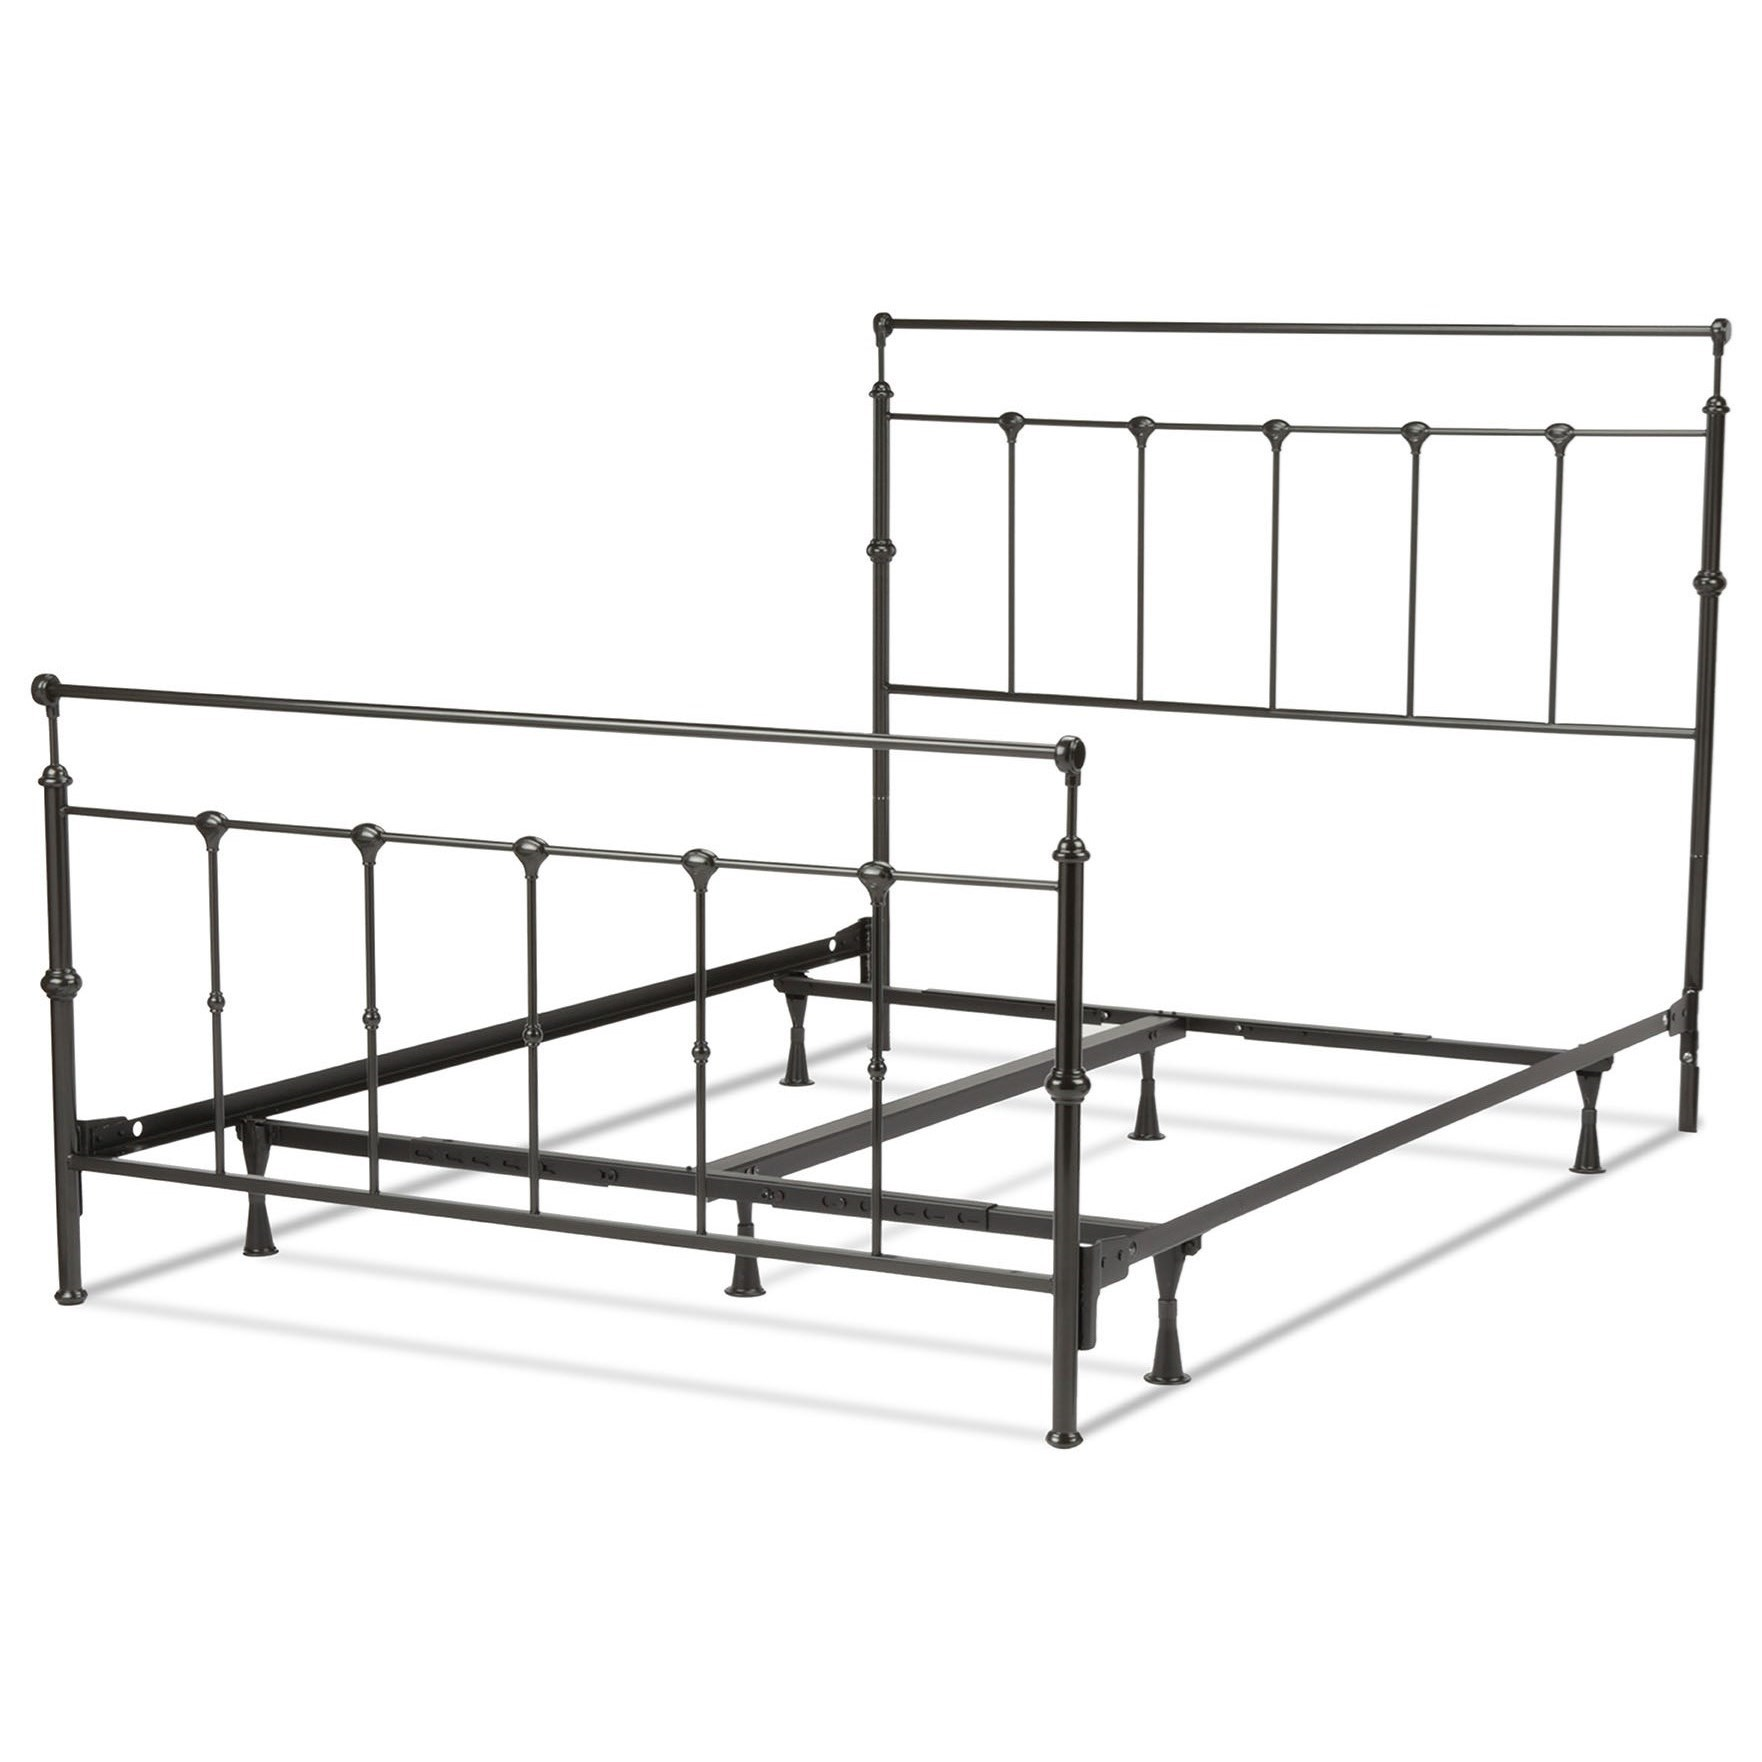 SMBunits in addition Queen Size Bed Frame Dimensions besides Ac modations in addition Bunk Bed Dimensions additionally 281166926890. on sofa twin bed